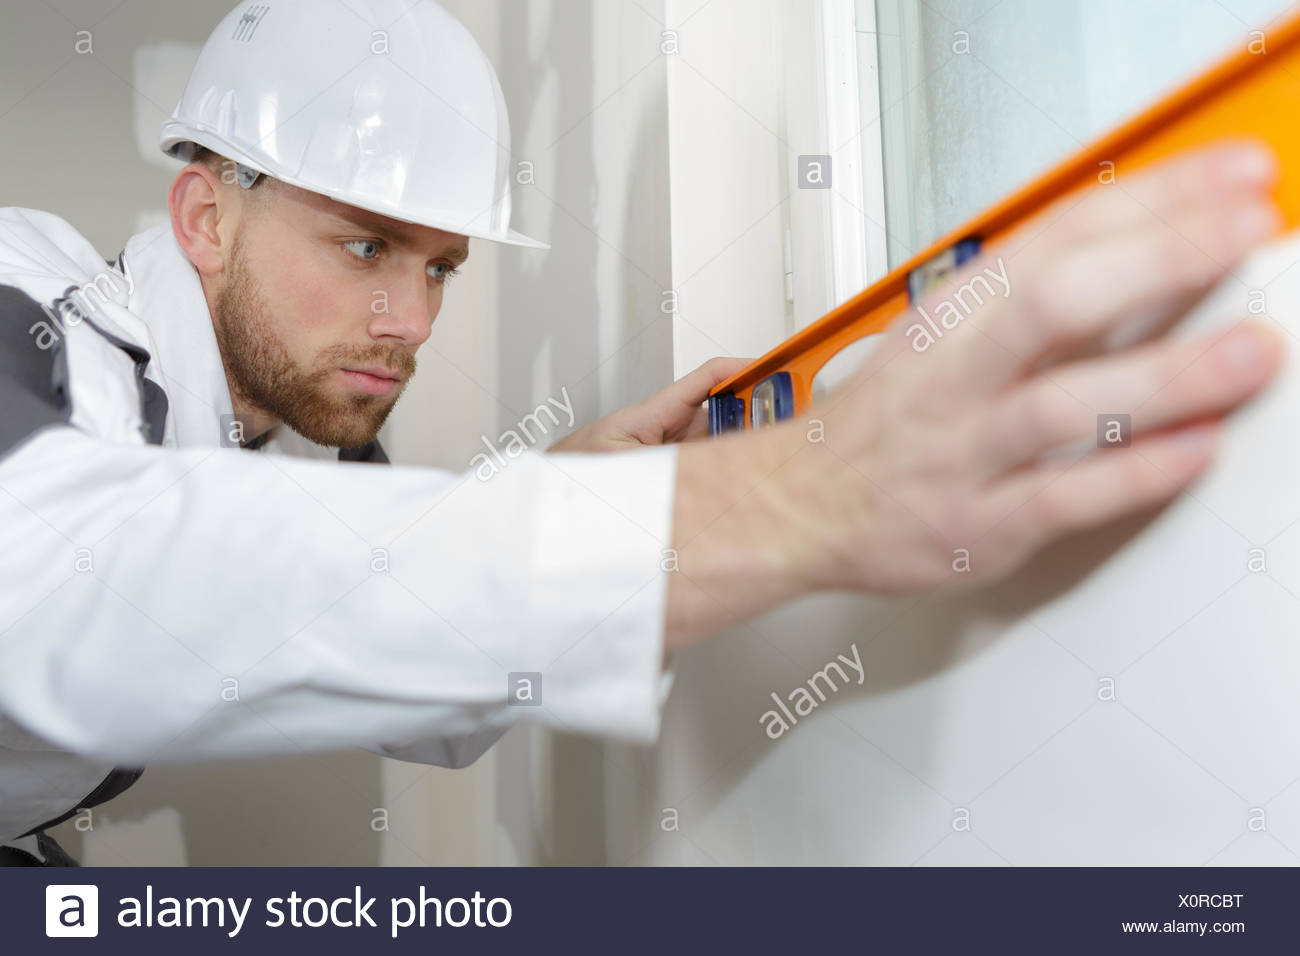 plasterer checking if walls are straight - Stock Image